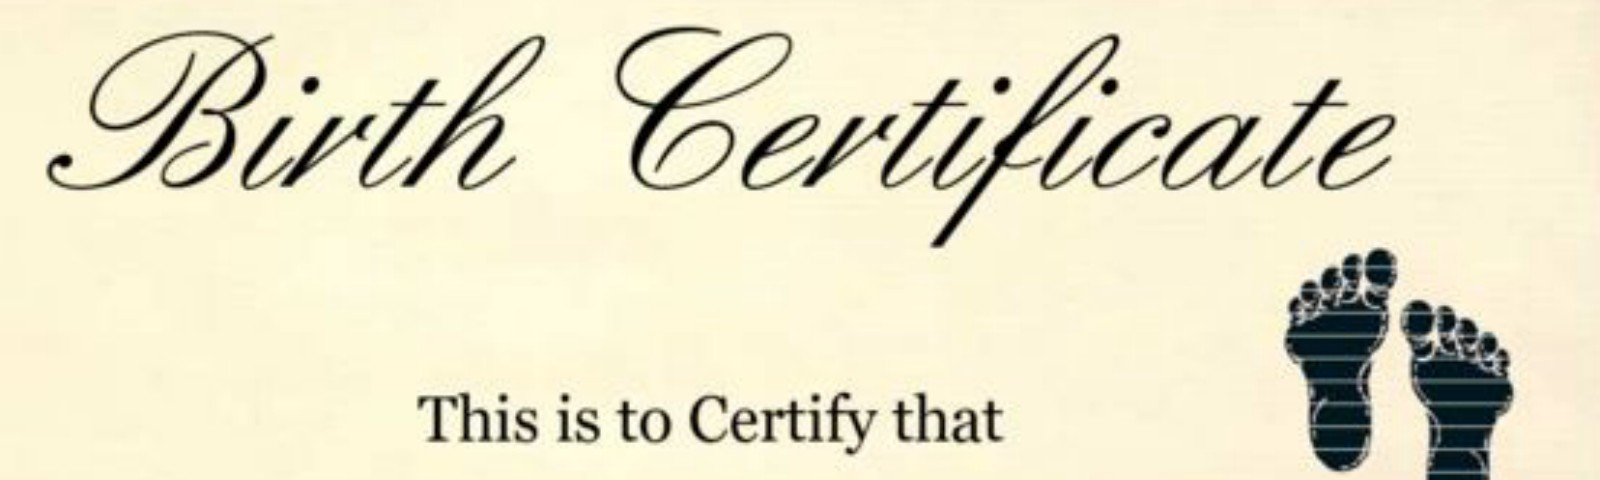 How To Apply For Or Collect Birth Certificate For New Born Baby In Pune